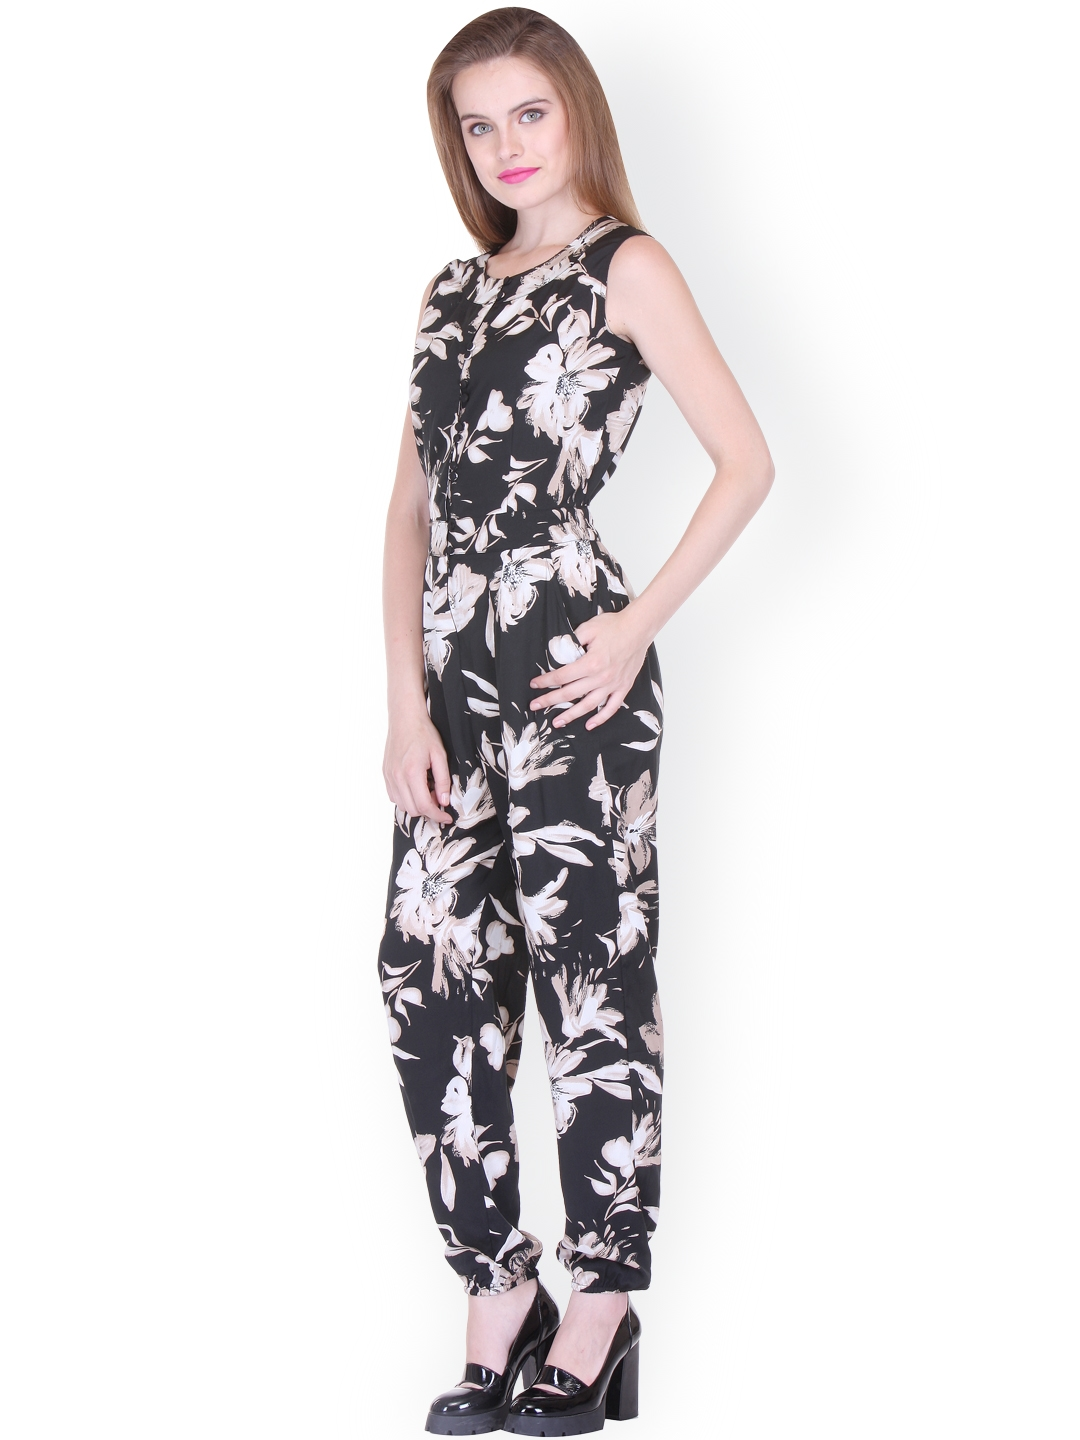 b5abbd4adf21 Buy Zastraa Black Floral Print Jumpsuit - Jumpsuit for Women 1781120 ...